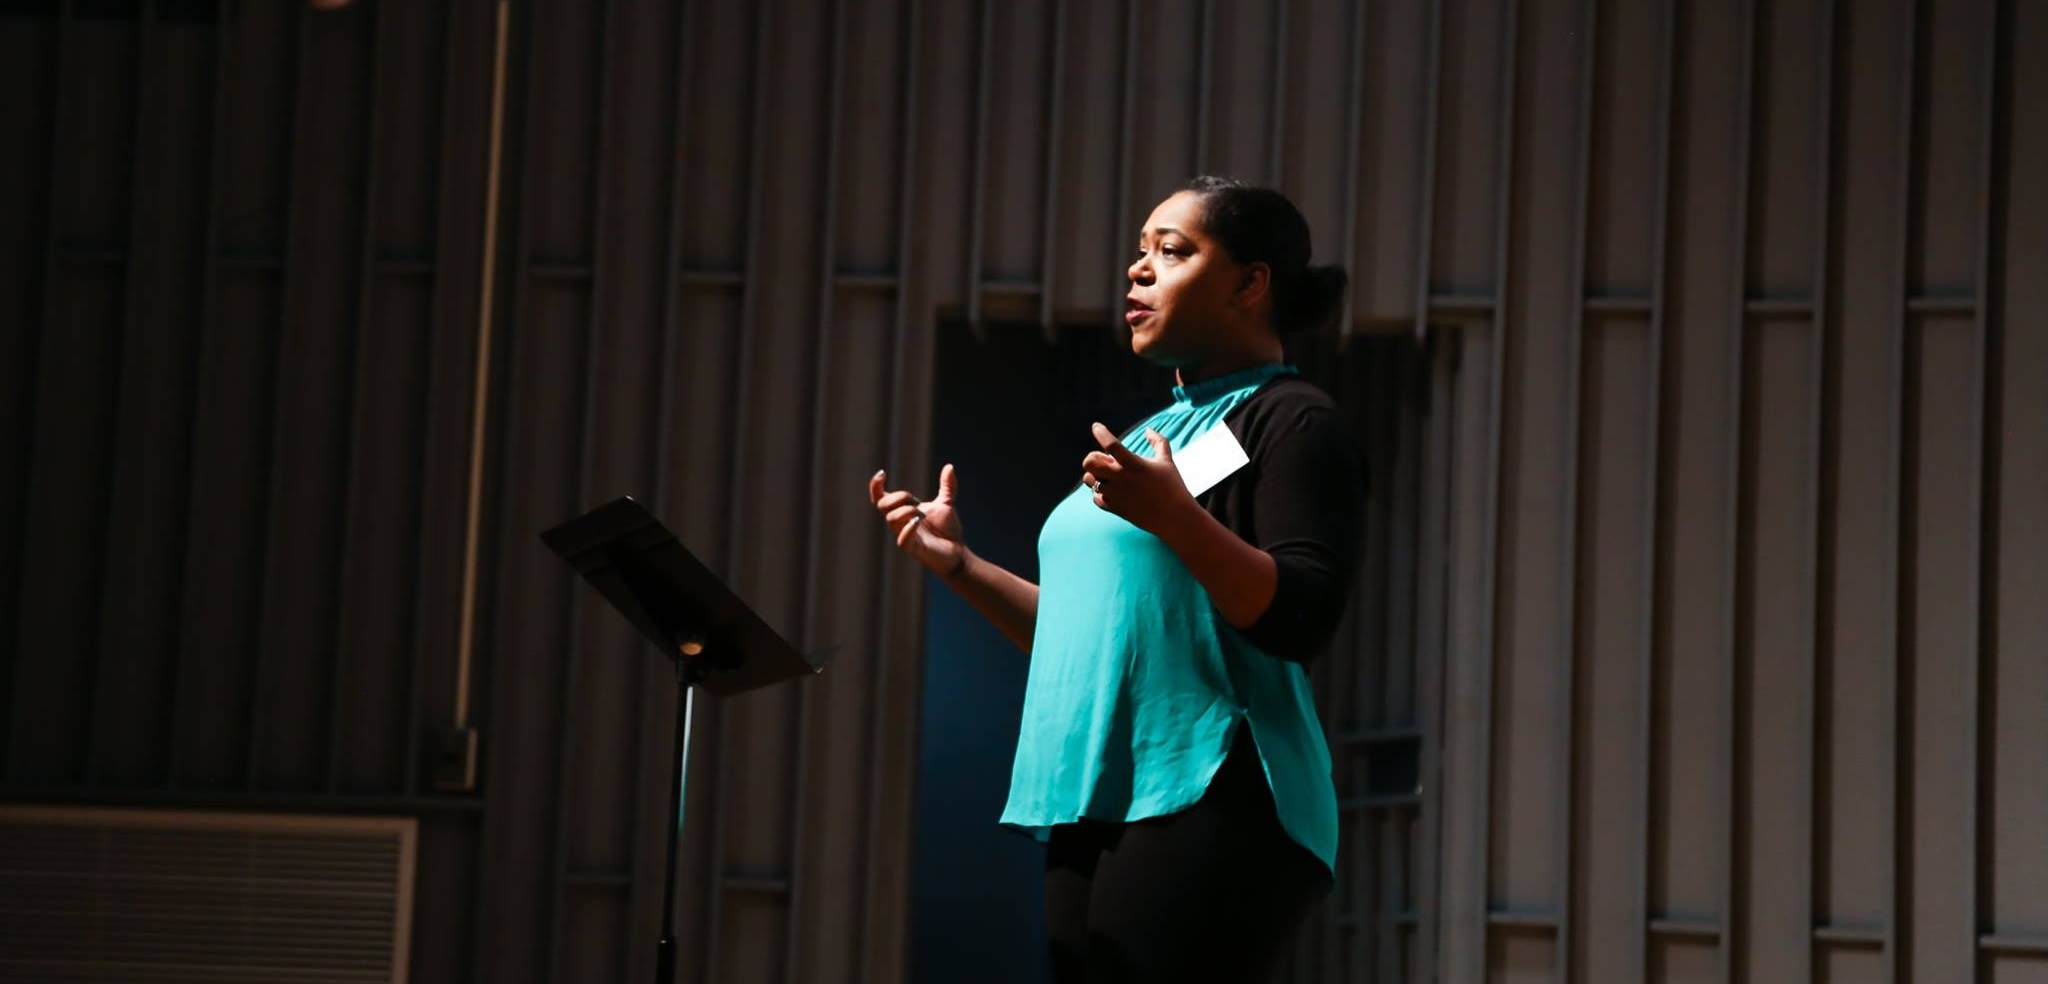 Torrie Wiggins Presenting at StateraConIII in Milwaukee. (Photo by Malloree Delayne Hill)